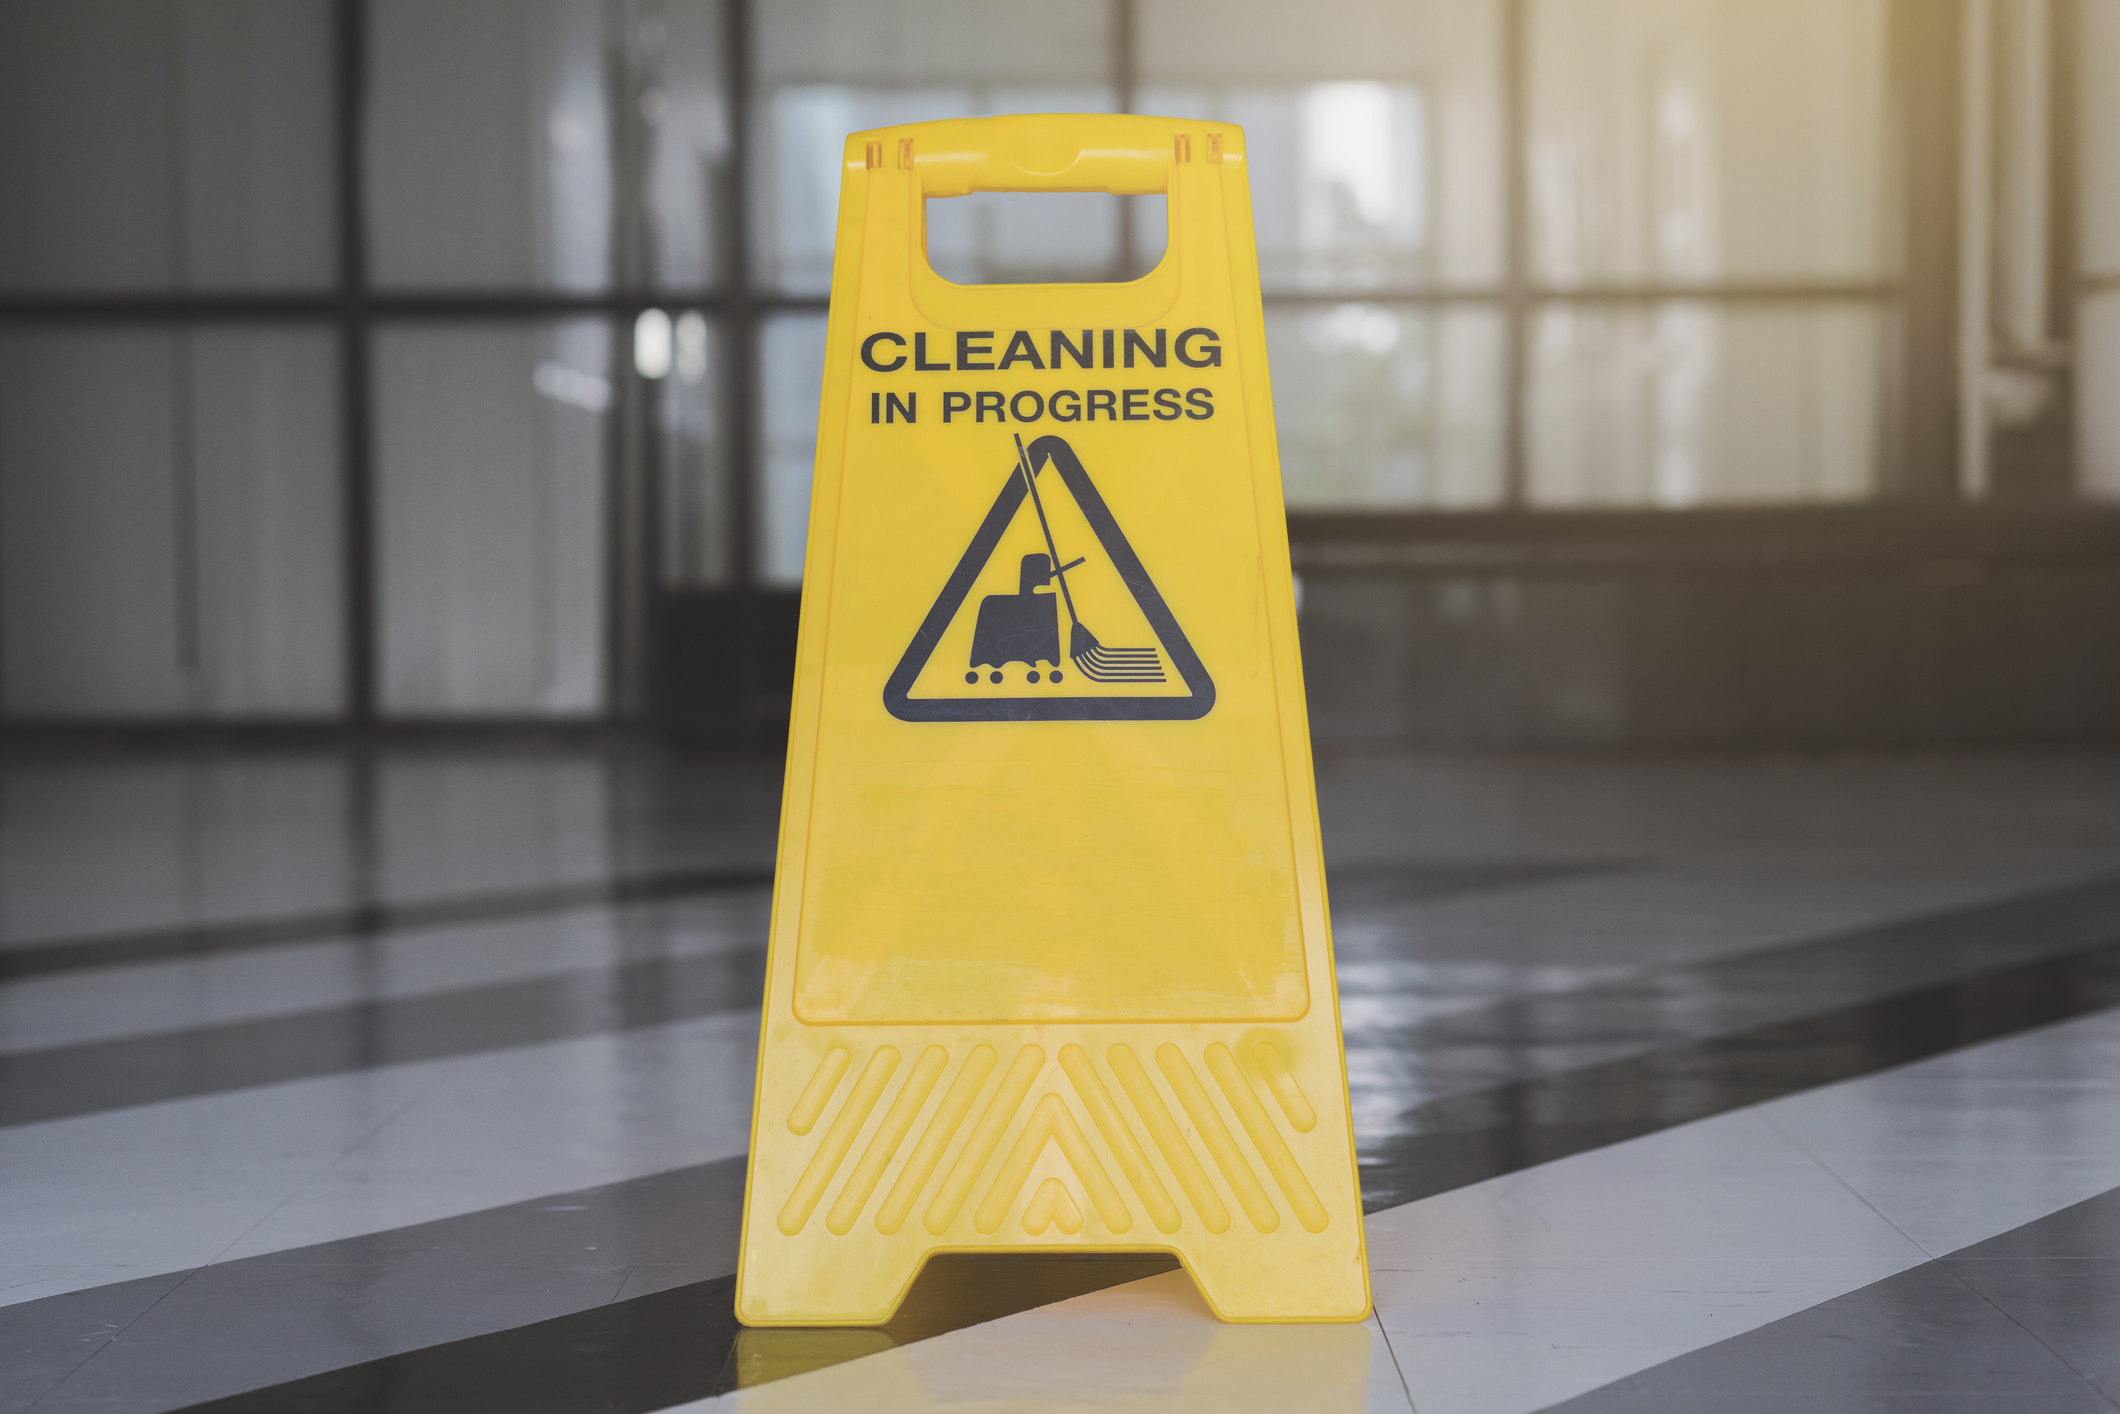 cleaning progress caution sign in office background